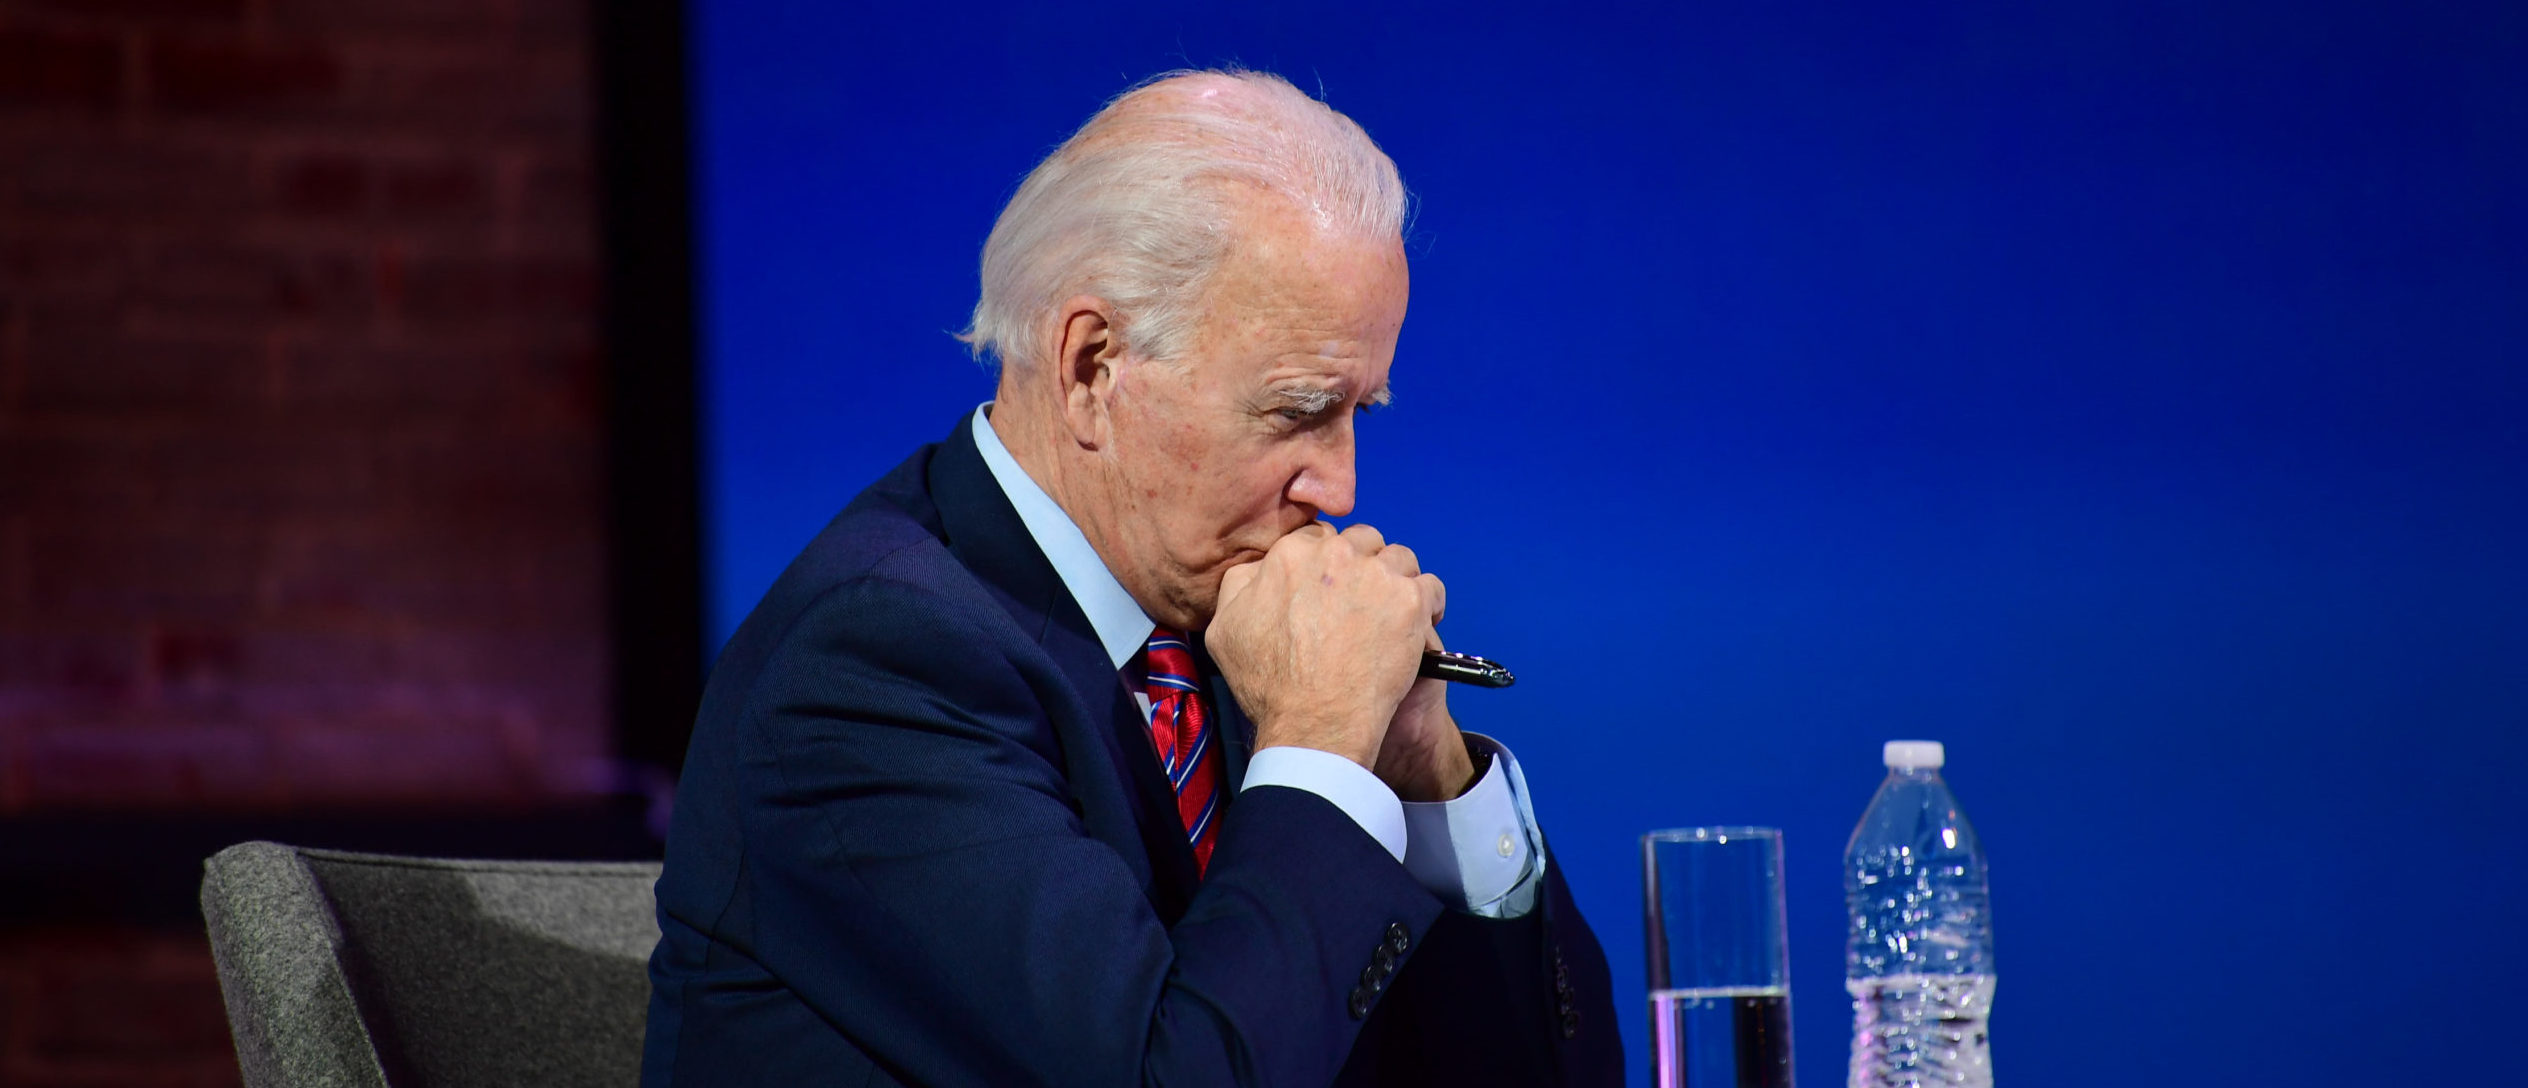 Media Censoring Negative Biden News May Have Cost Trump The Election, Swing State Poll Shows